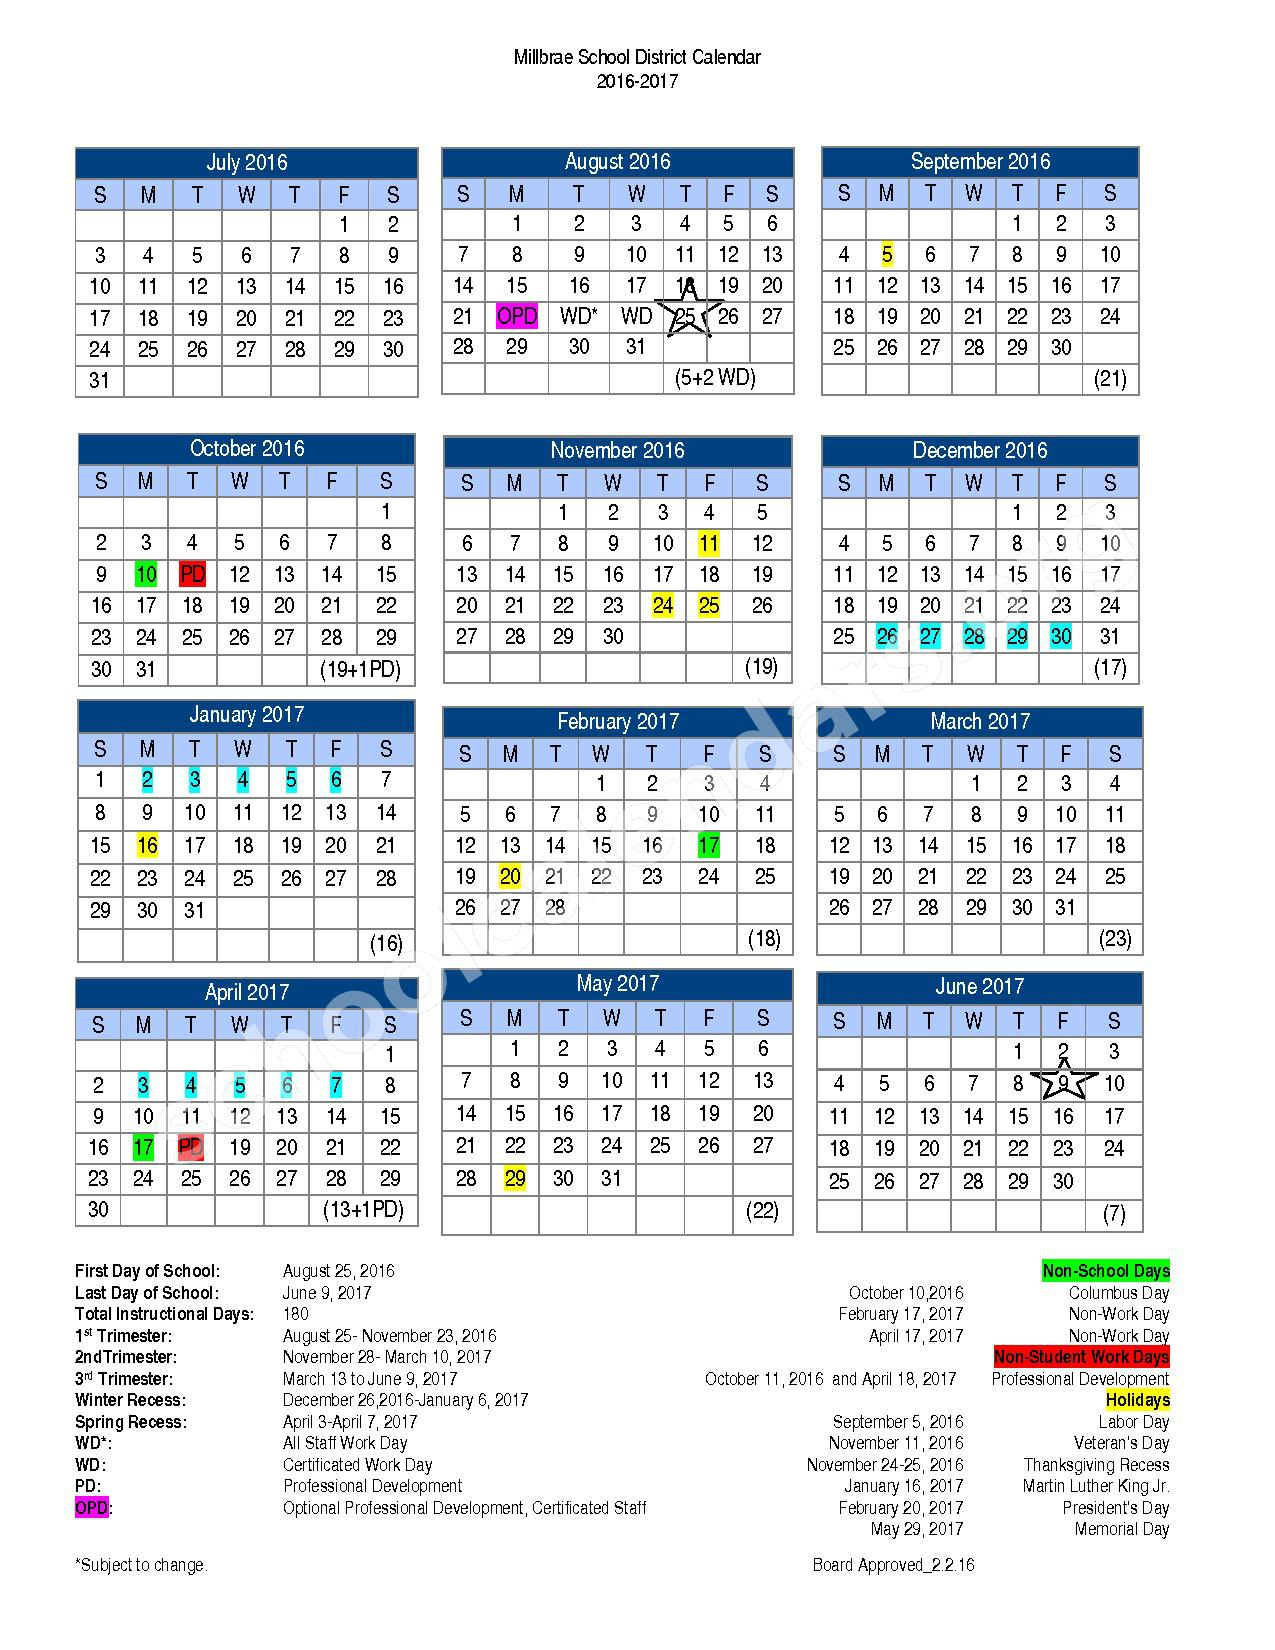 Millbrae School District Calendars – Millbrae, CA